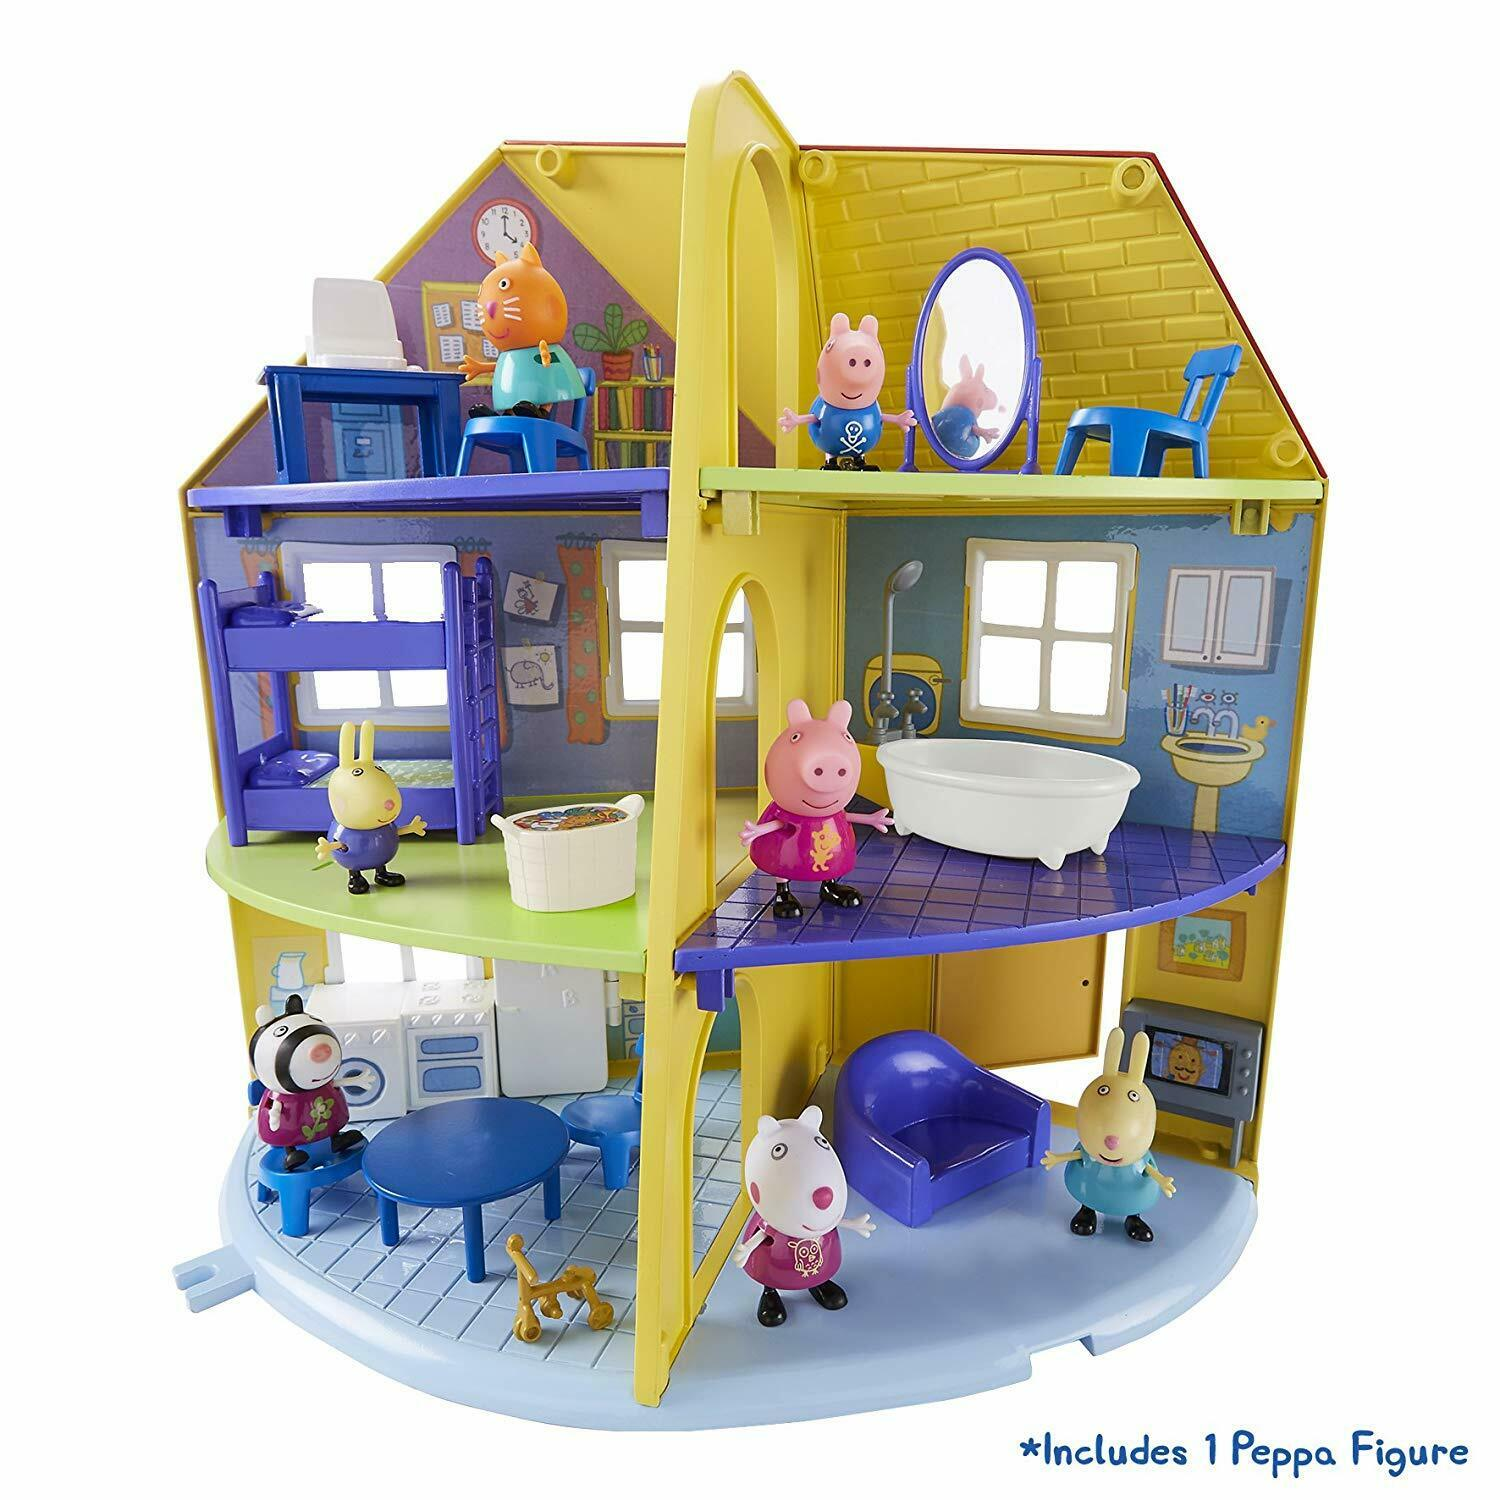 Peppa Pig Peppa's Family Home Playset Kids Fun Toy Figures Characters Furniture